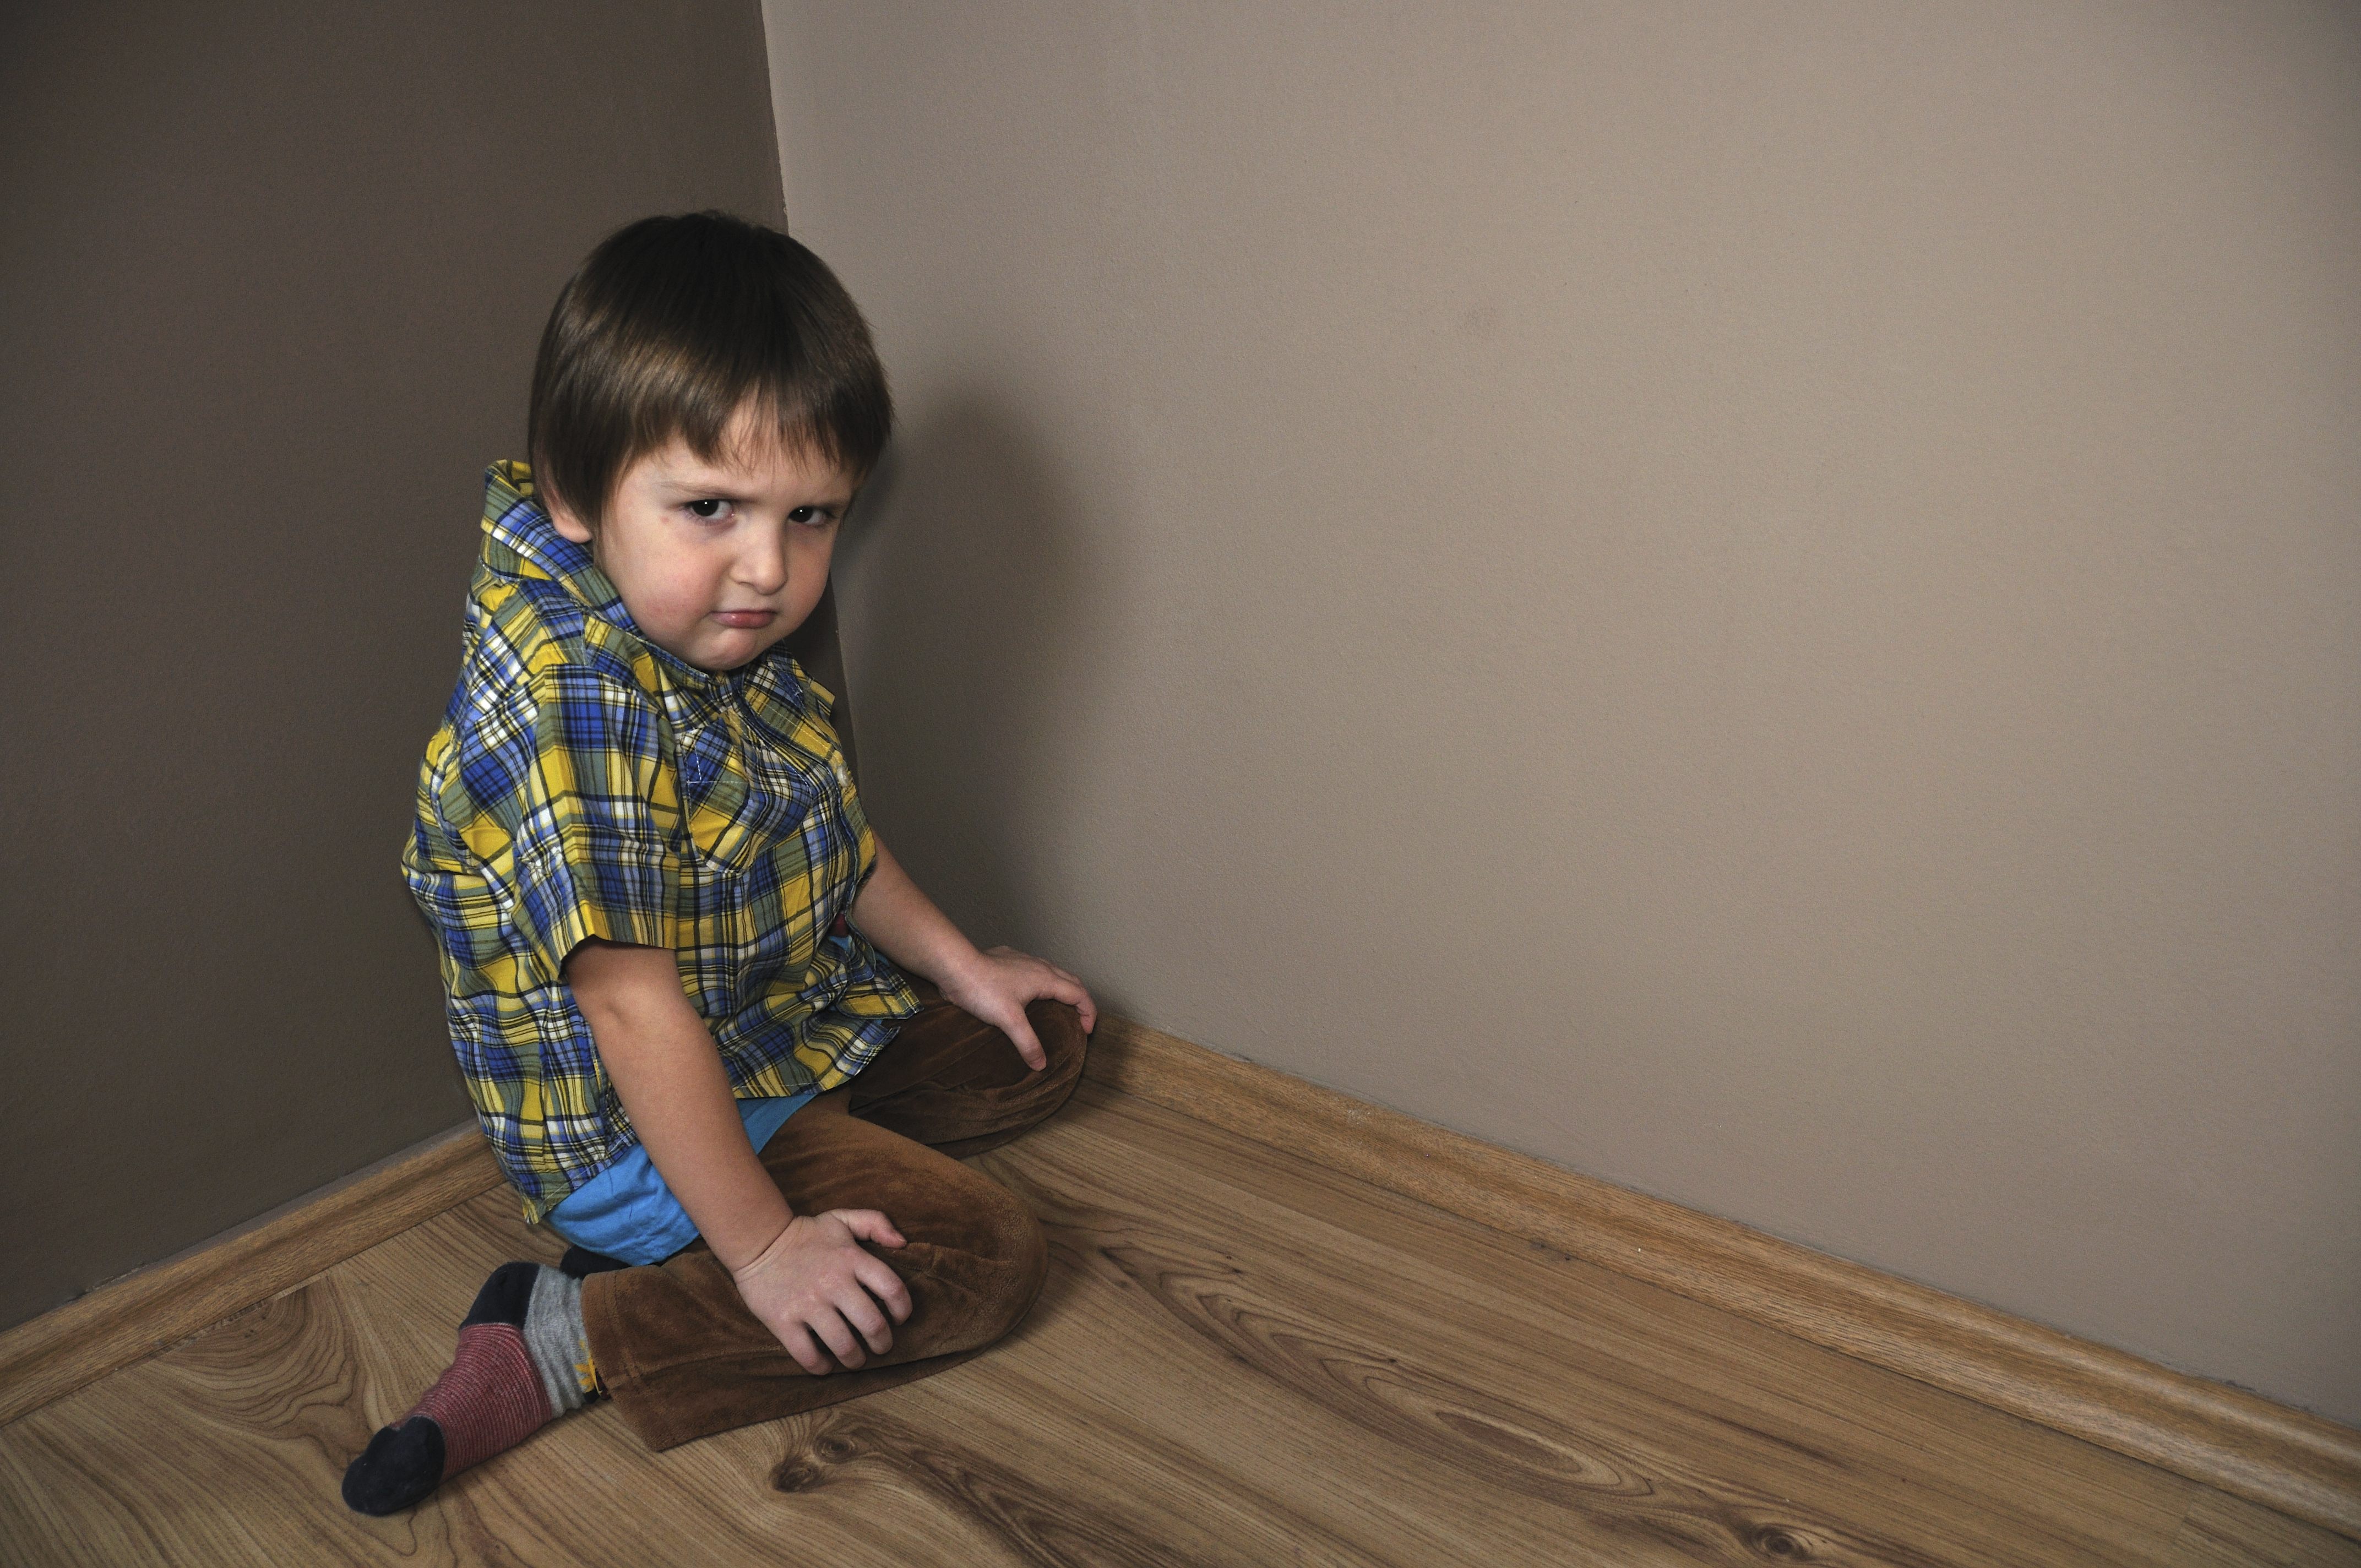 Parenting: Do time-outs help or hurt?